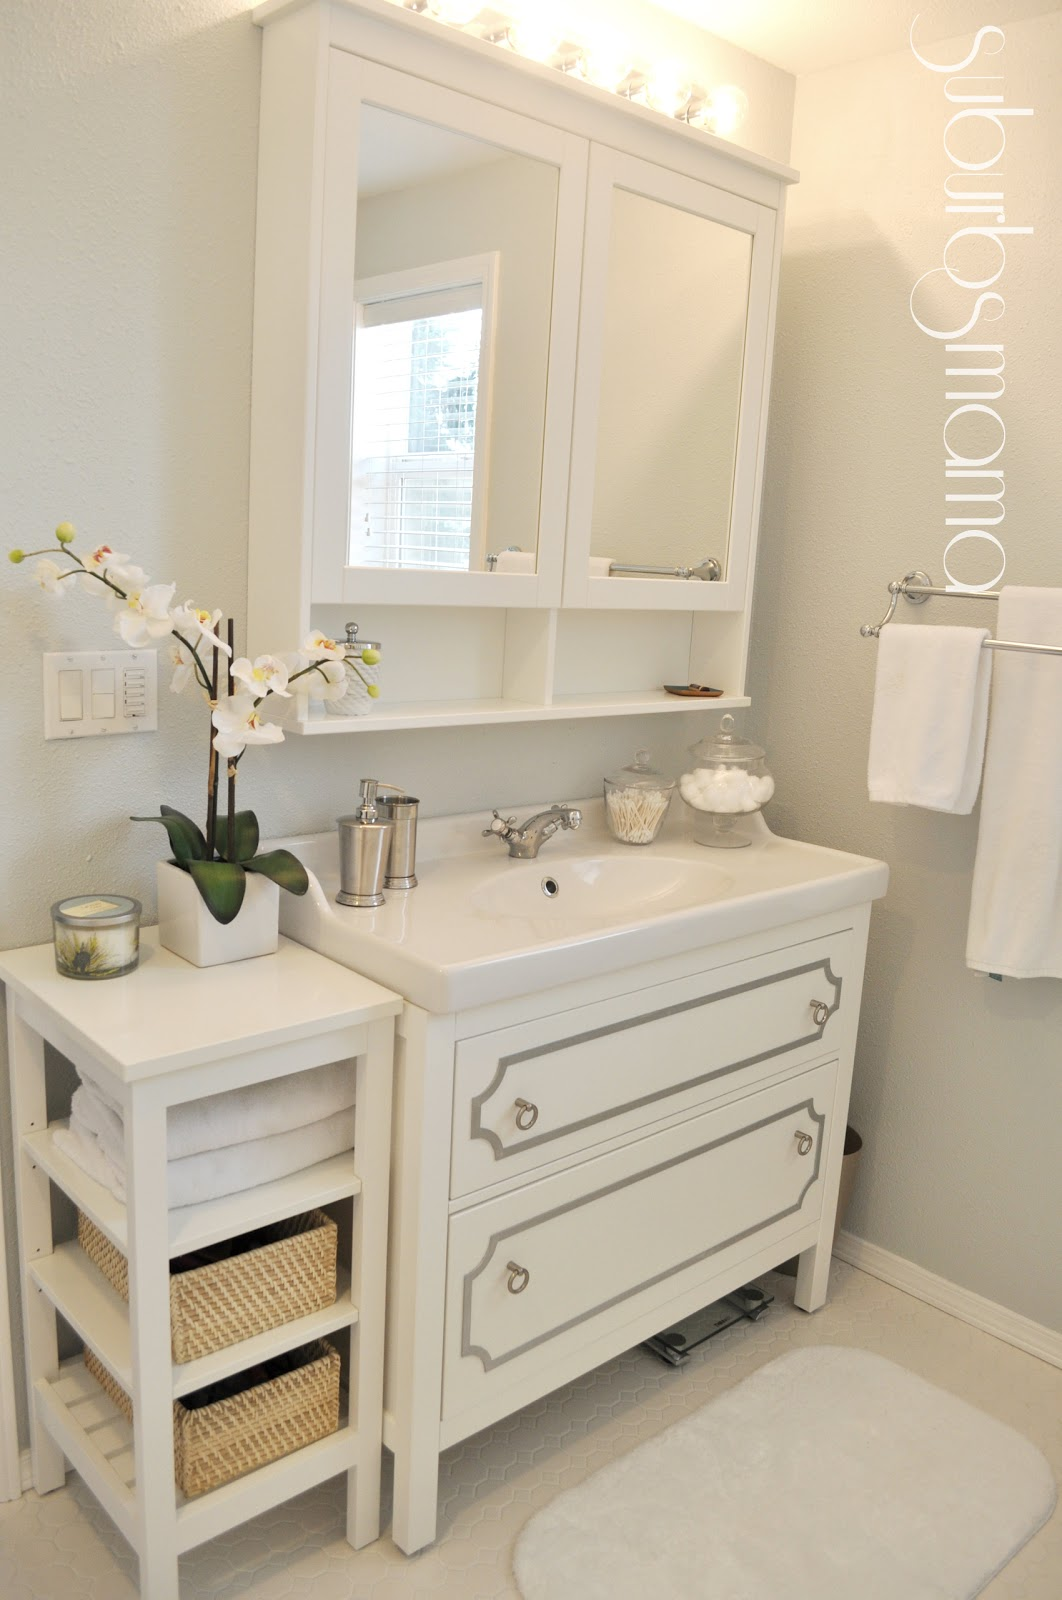 Pretty Badezimmer Ikea Images Gallery I Love My Bathroom